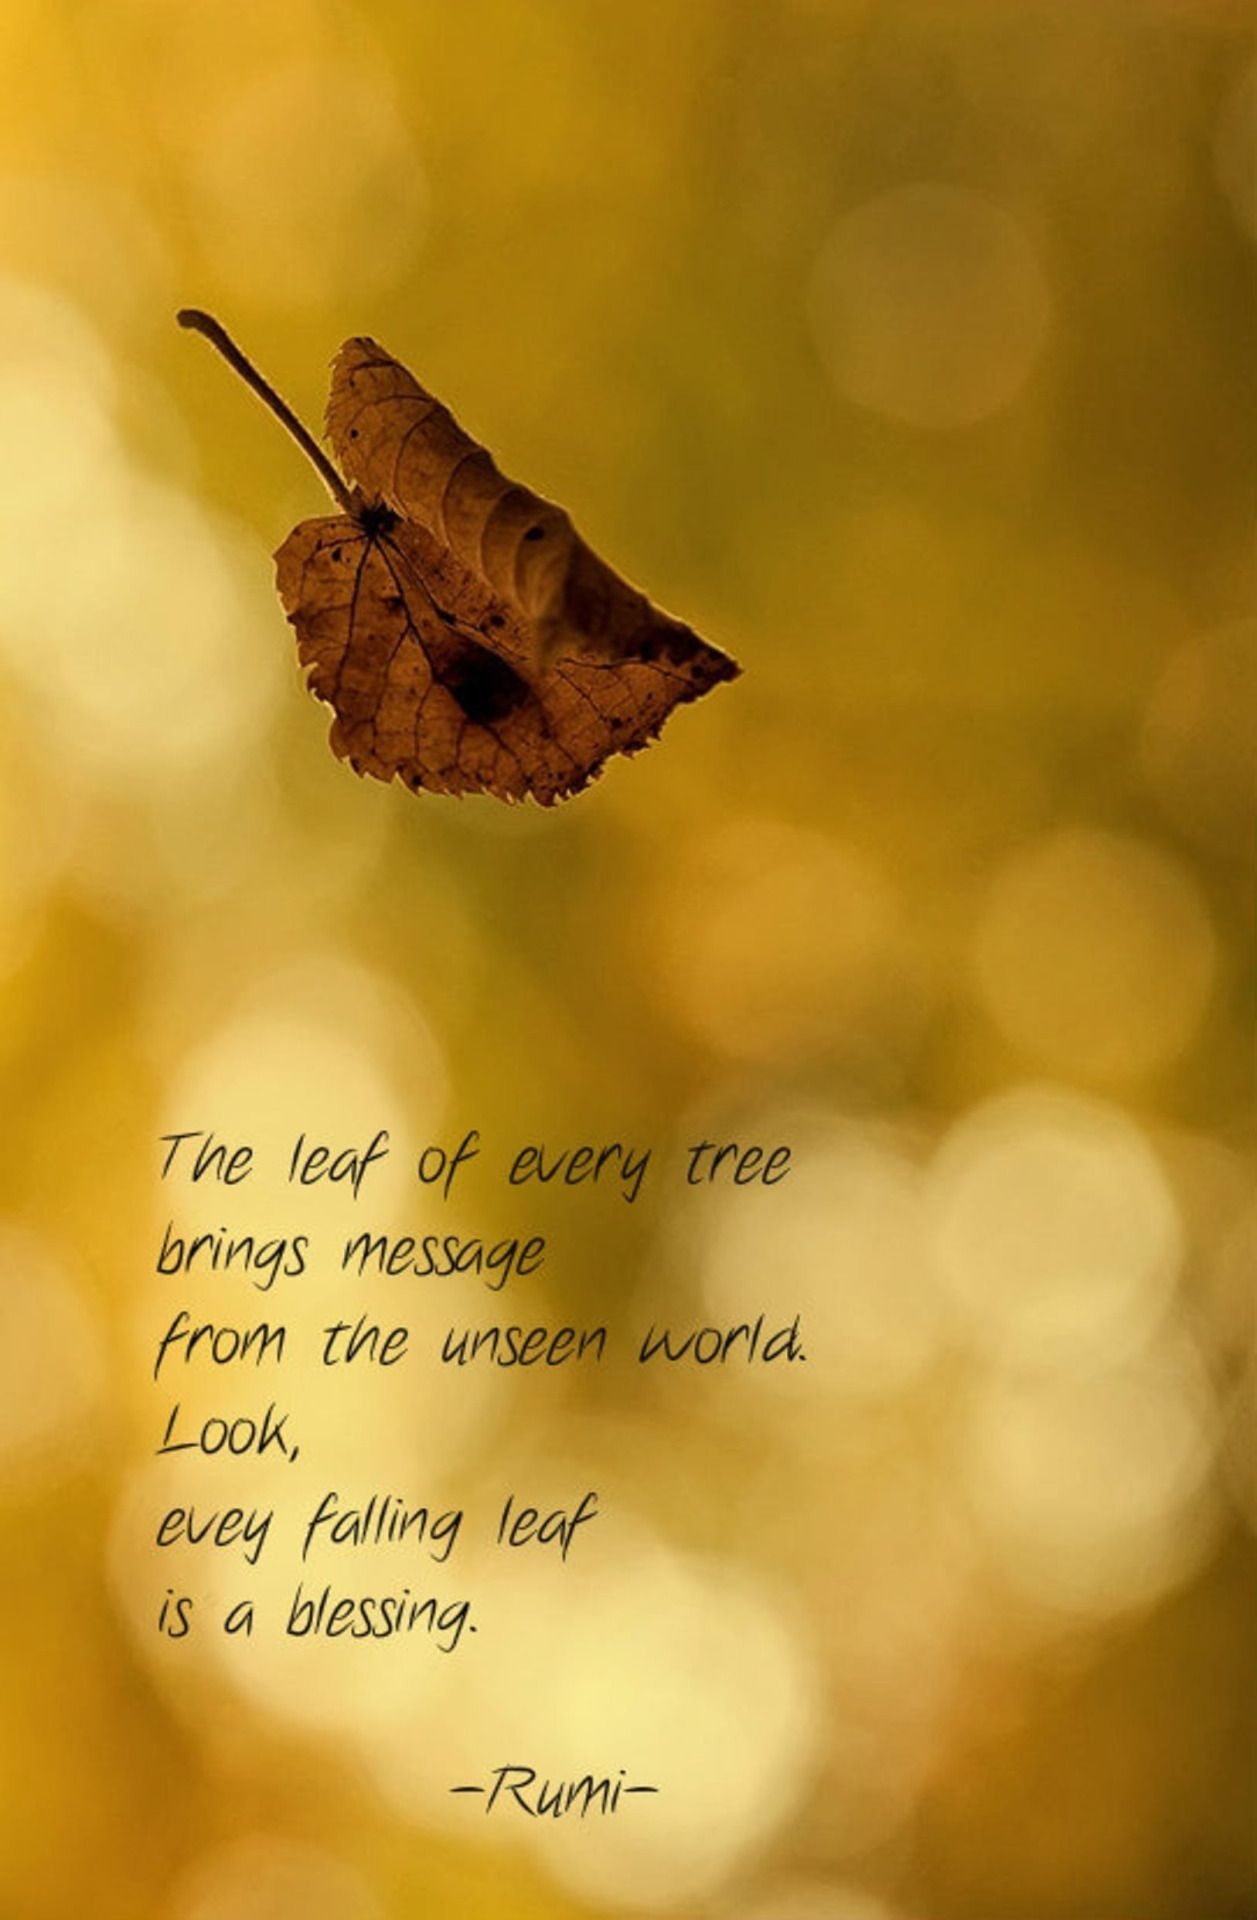 Draw & Wings. - The leaf of every tree brings message from